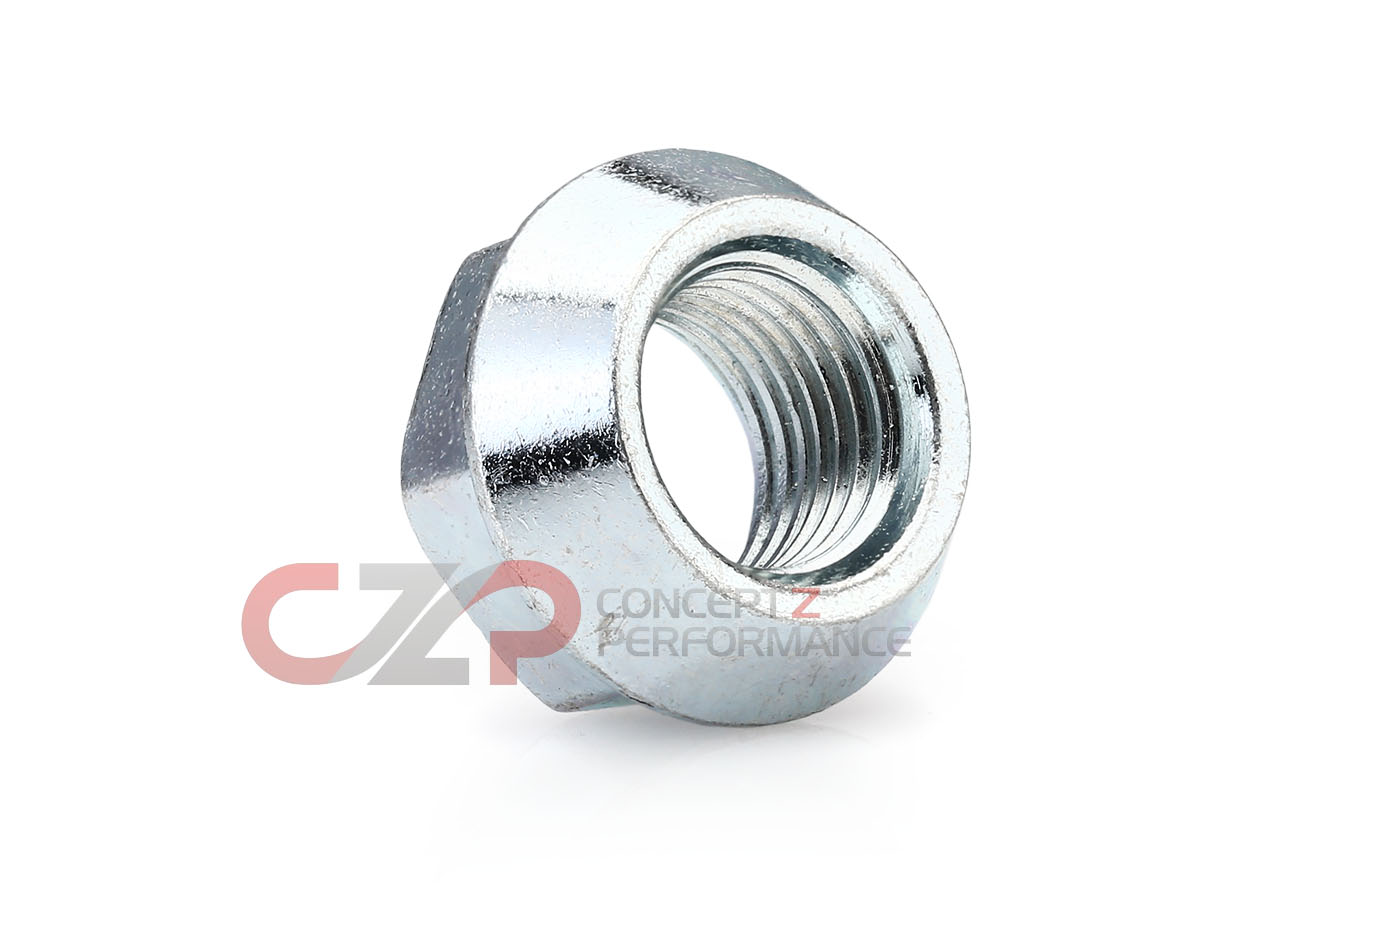 P2M Lug Nut M12x1.25, Short 12mm, 17mm Hex Head